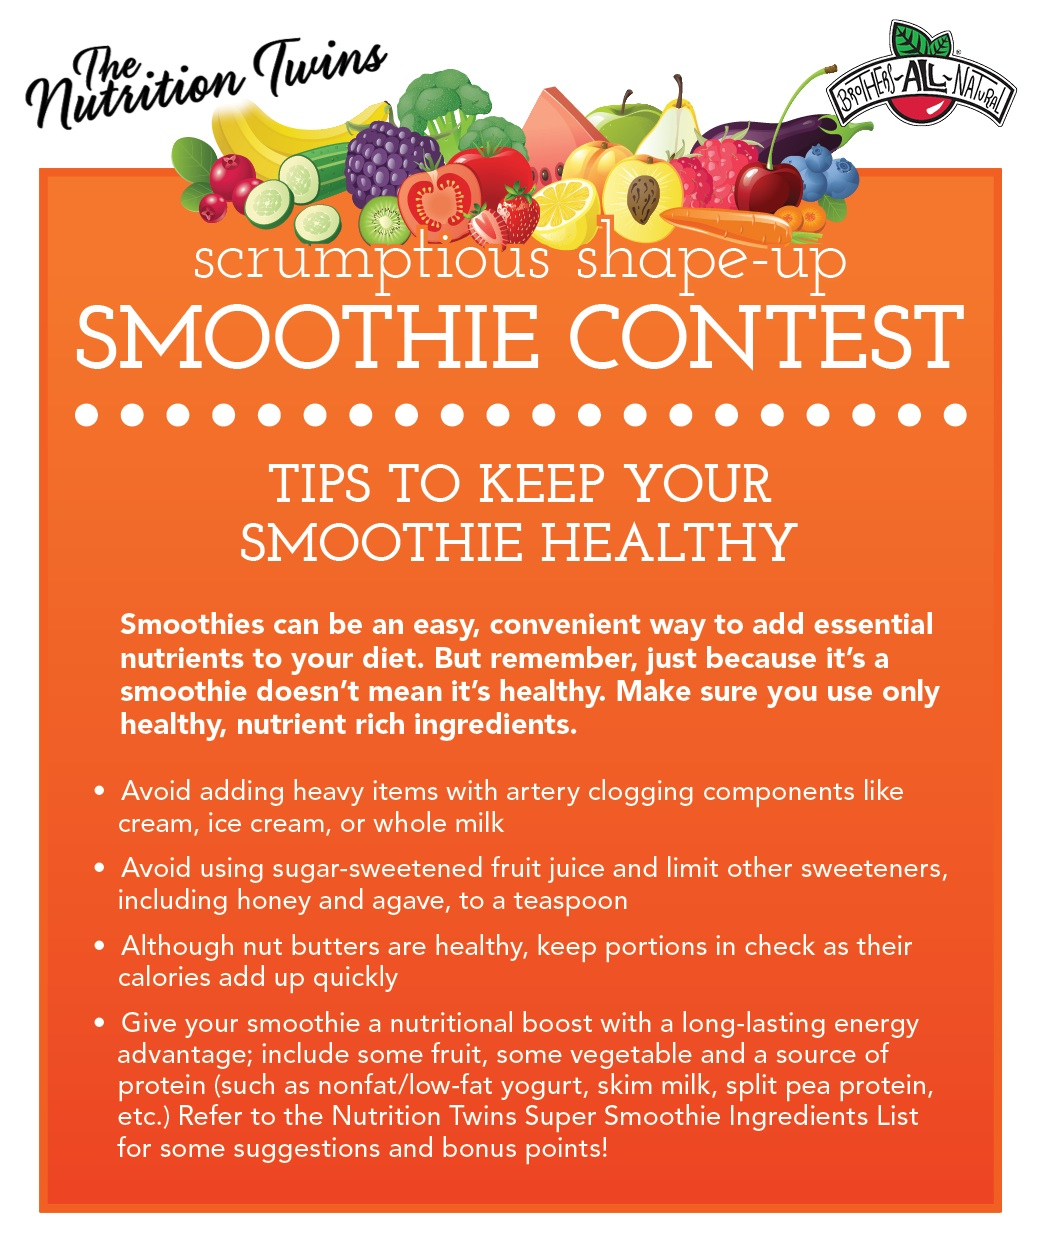 SmoothieTips_tall3